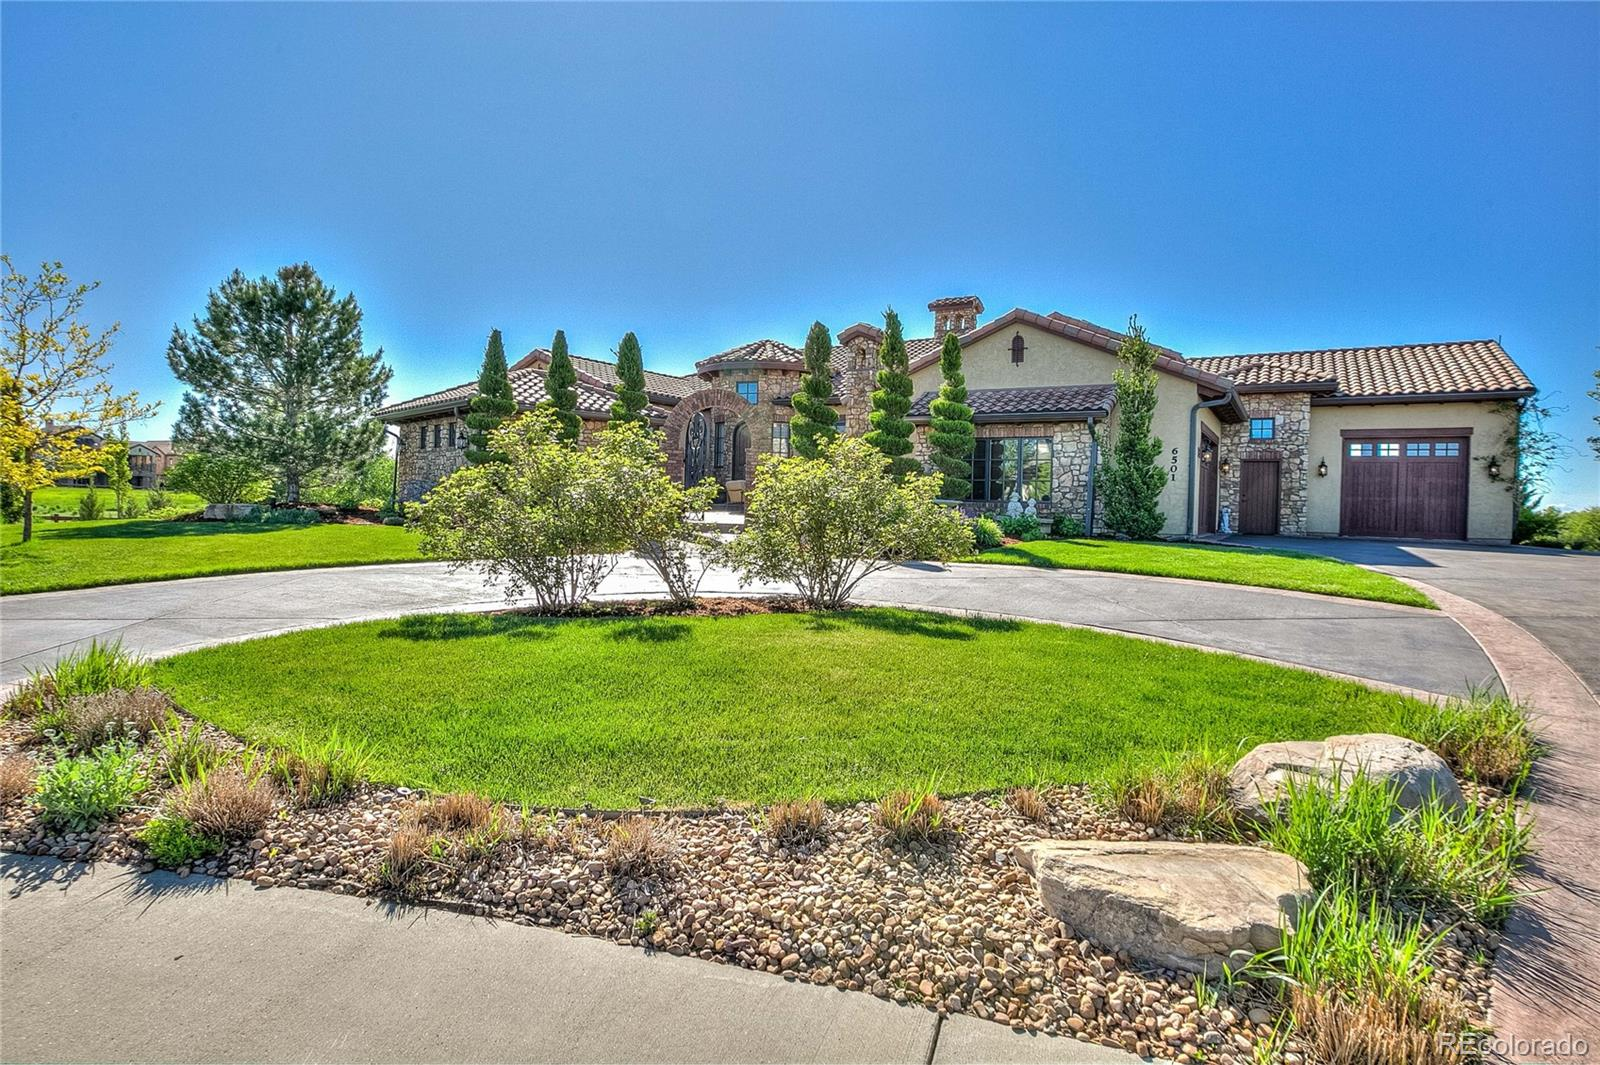 6501 Engh Place, Timnath, CO 80547 - Timnath, CO real estate listing